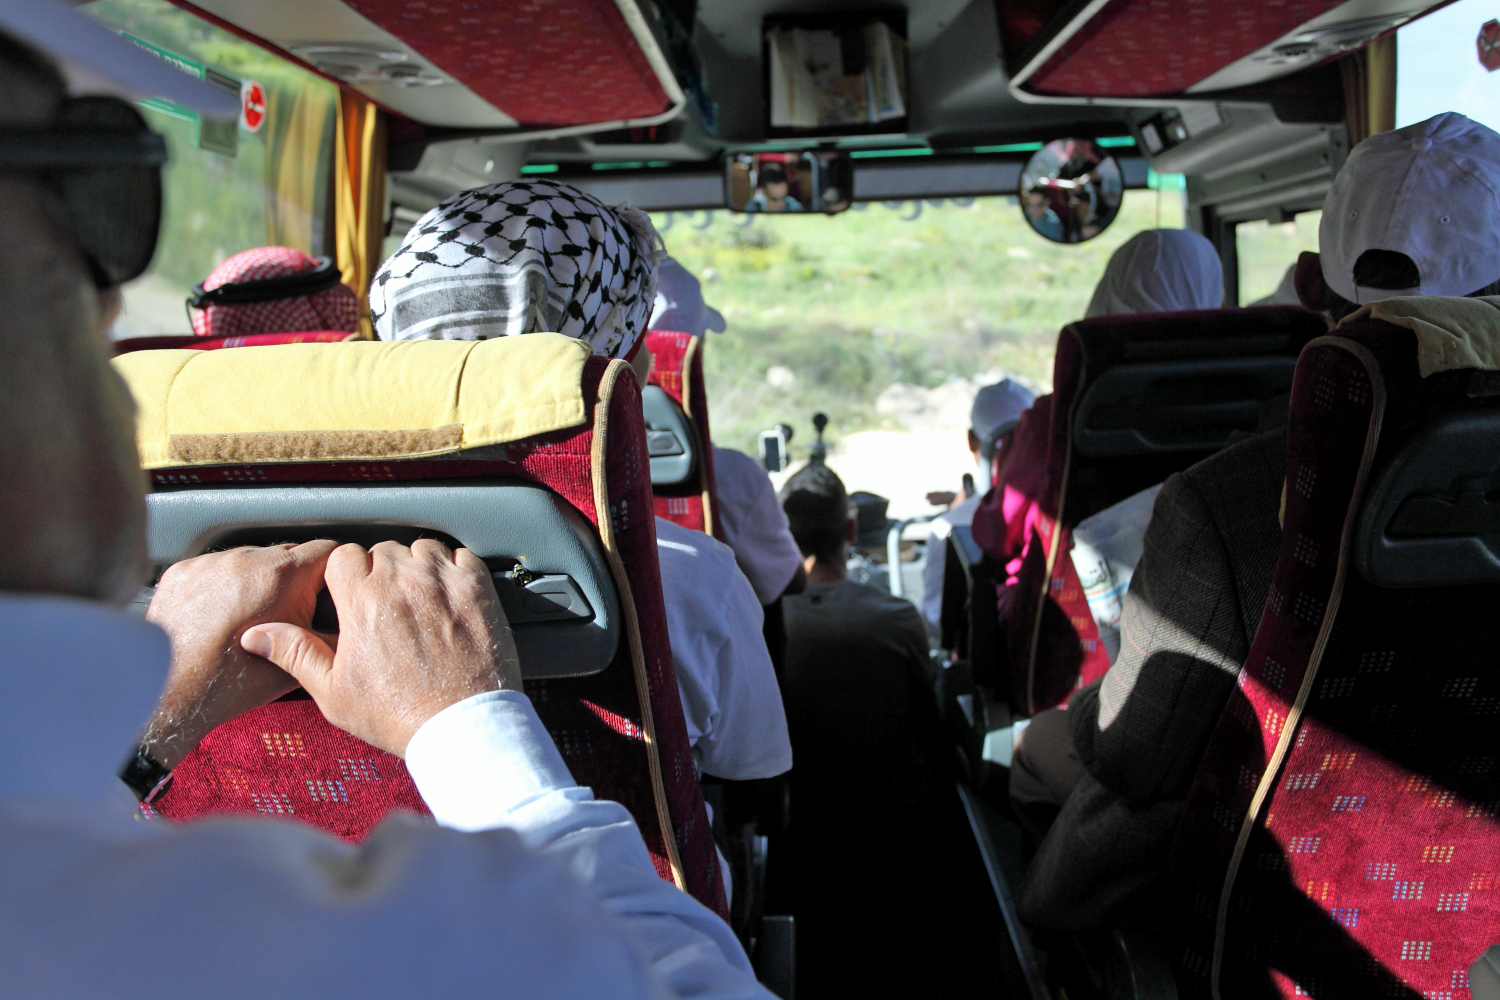 Lifta's refugees piled into three buses, along with many cars and vans, to make the 10-minute journey from French Hill in East Jerusalem back to their village. [Rich Wiles/Al Jazeera]